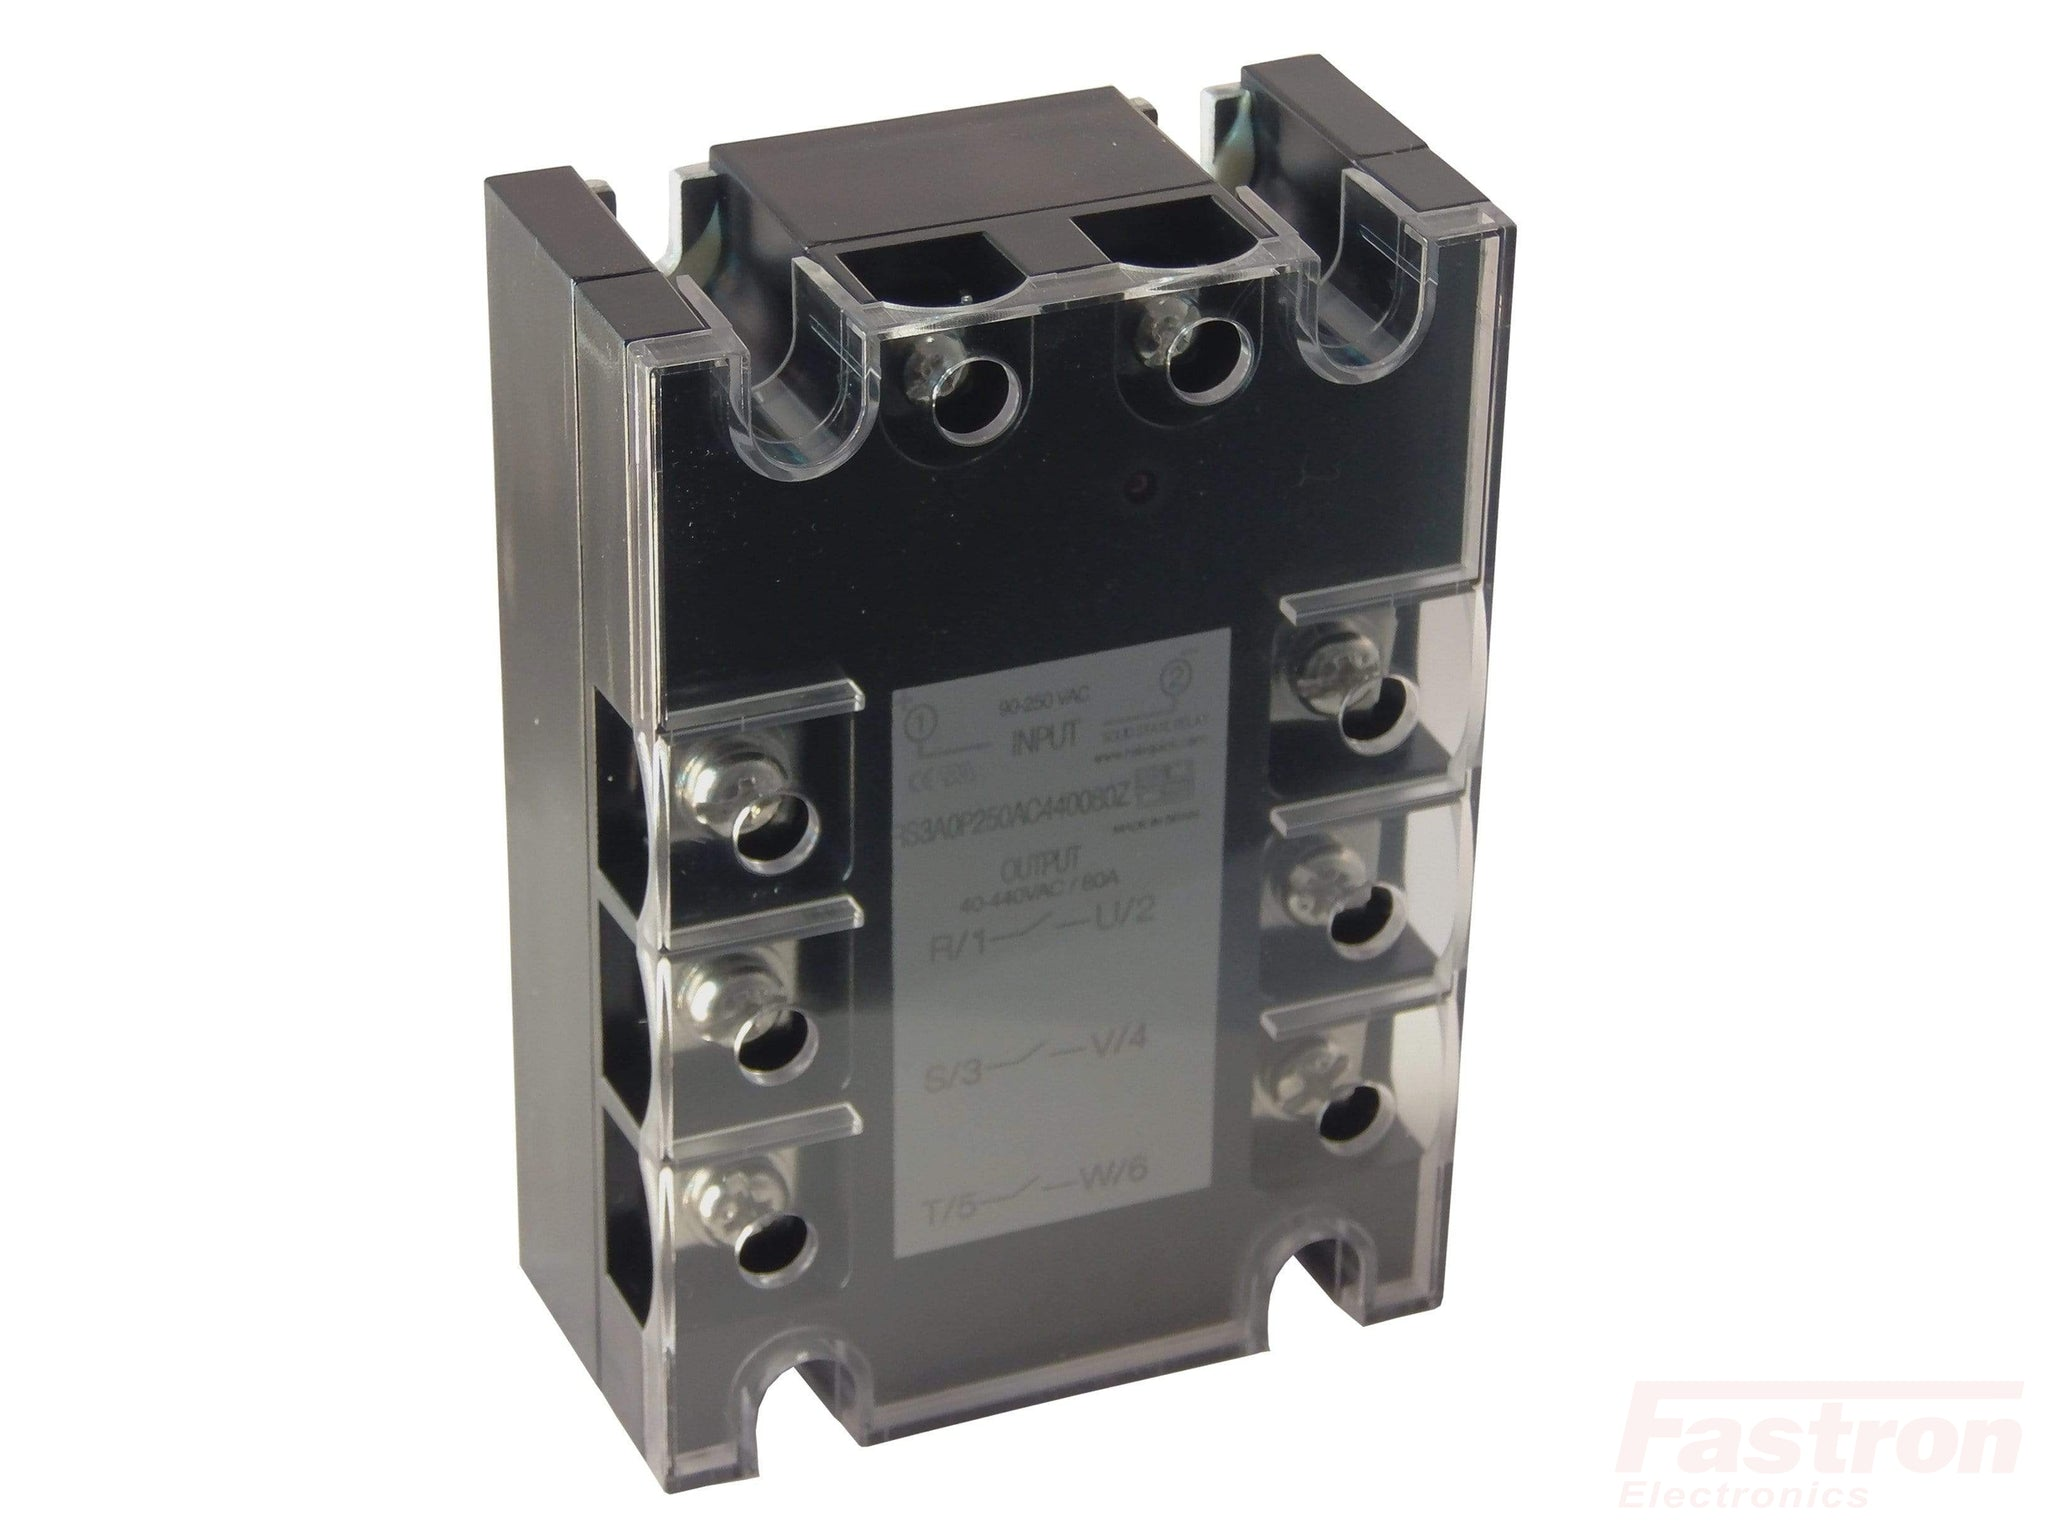 RS3A0P032DC480120Z, 3 Phase Solid Sate Relay, 480VAC, 120 Amps per phase